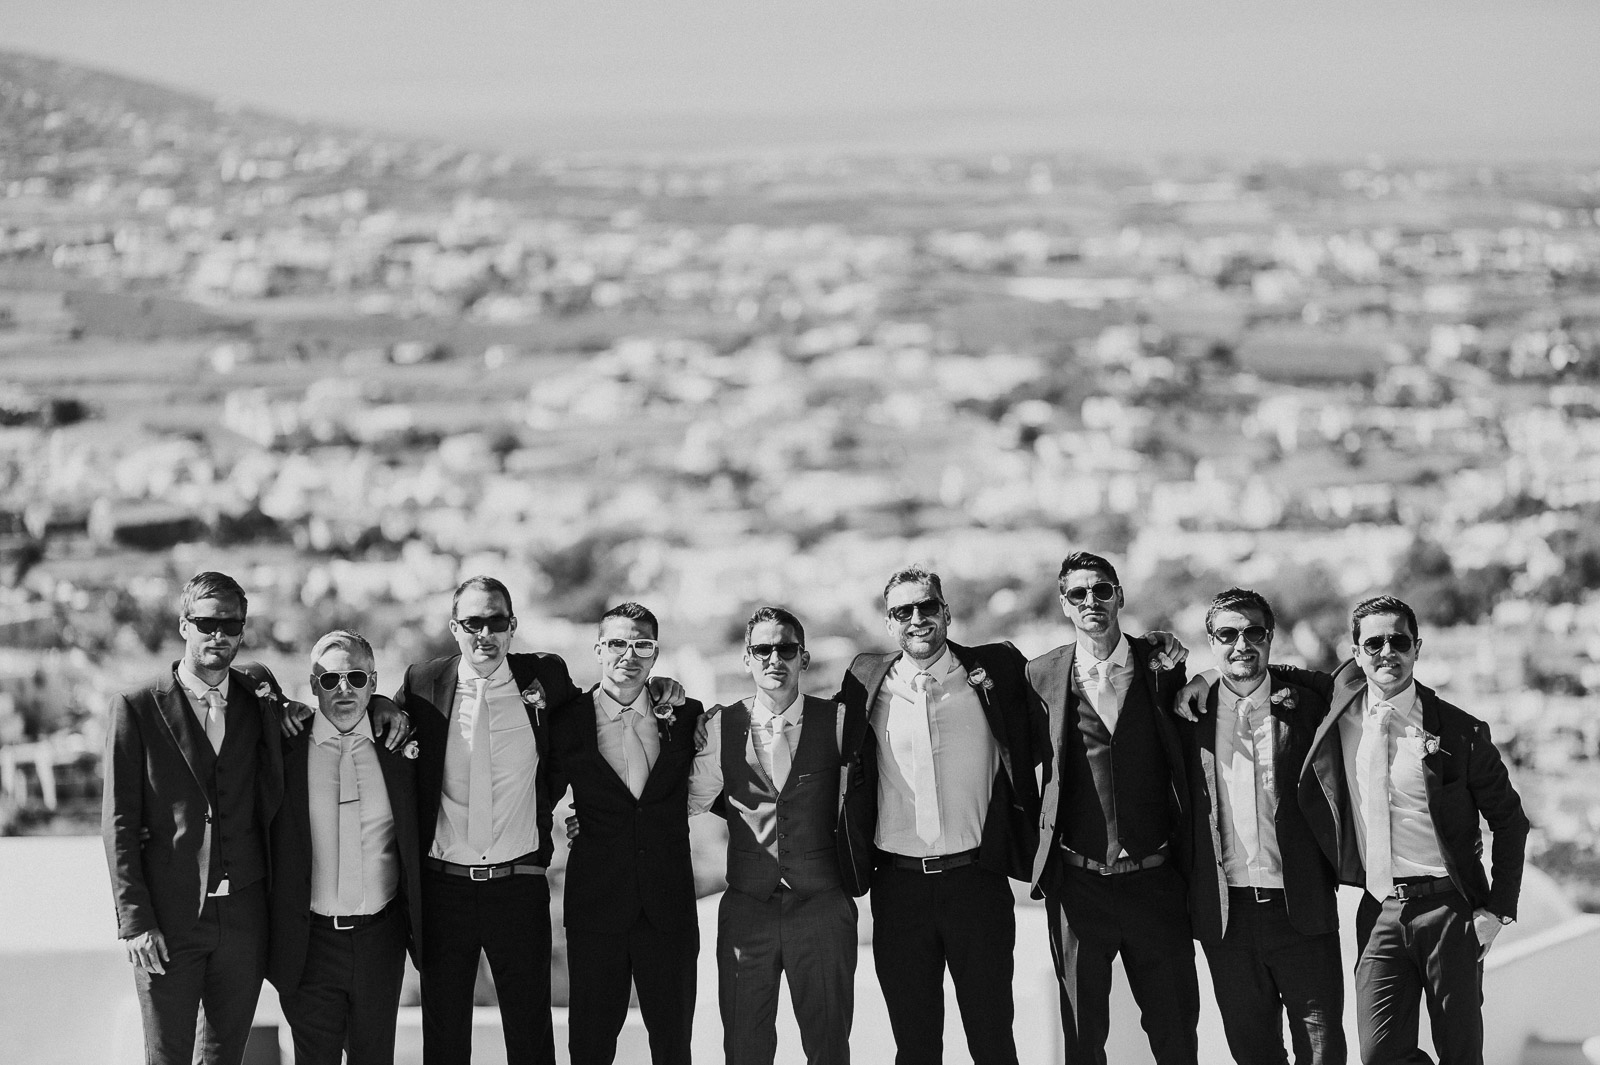 Santorini-Wedding-Photographer-Greece-Destination-Weddings-Mait-Juriado-M&J-Studios-044